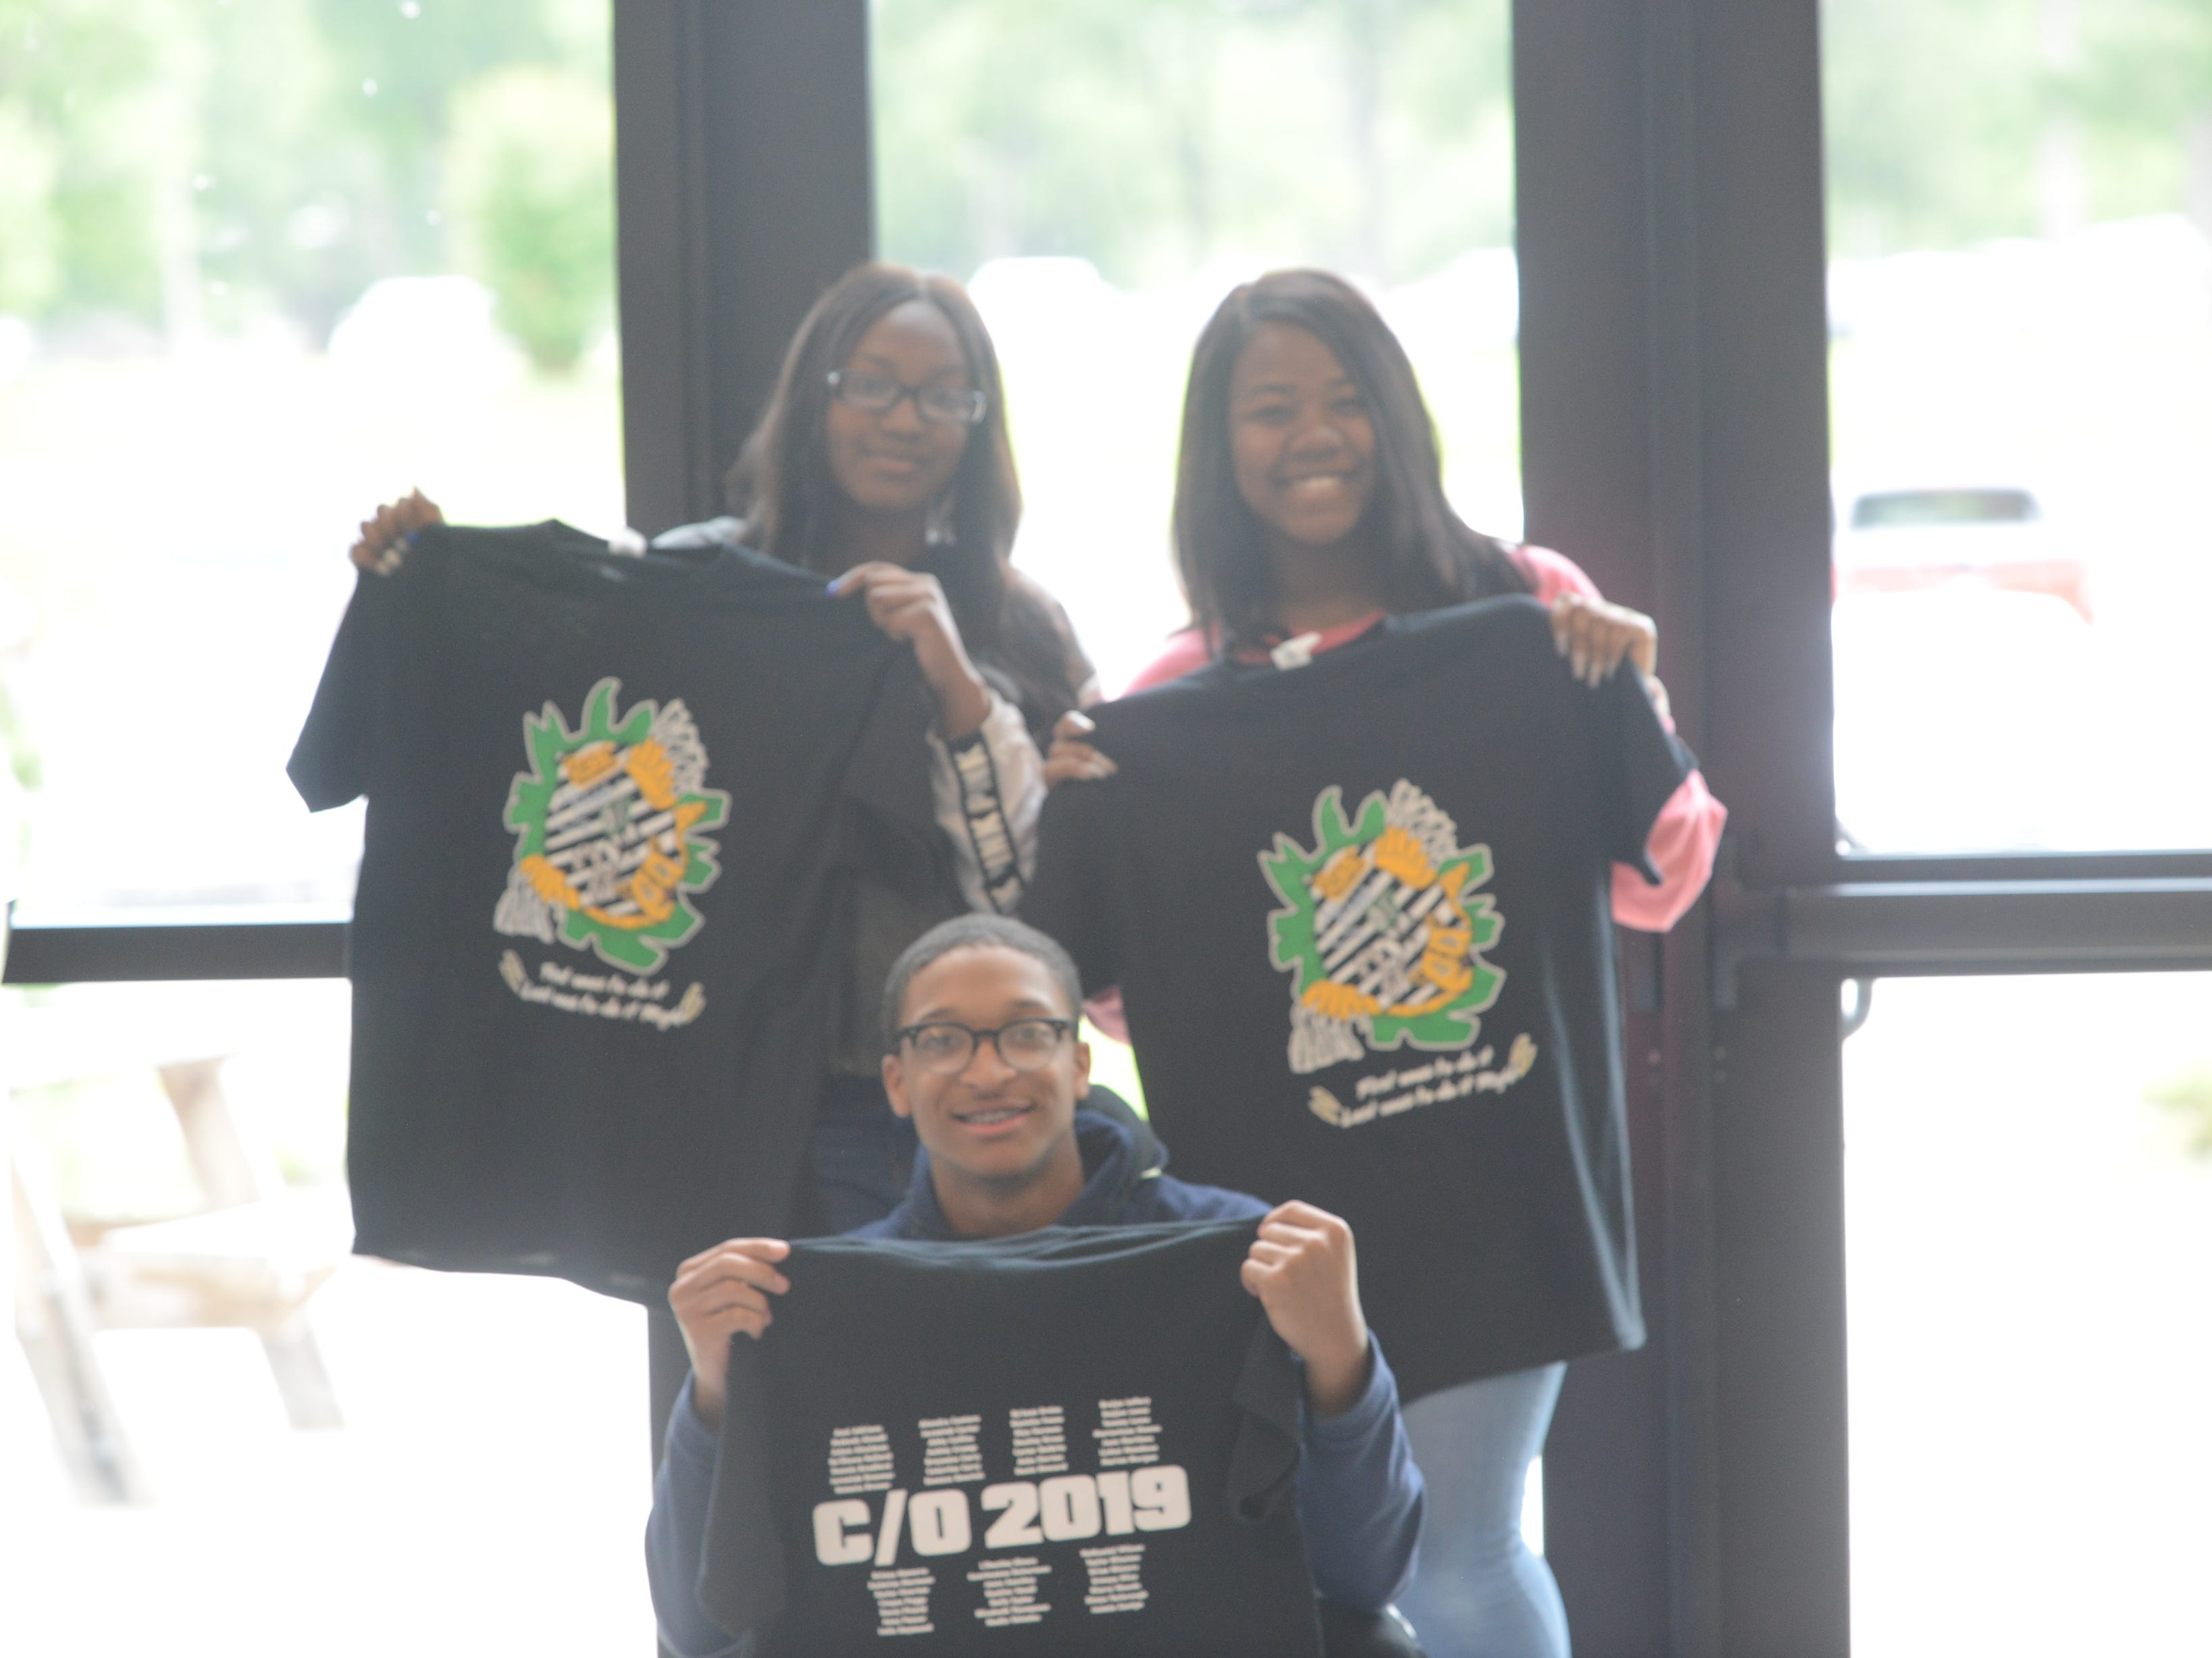 Students show off their senior shirts that slogan how they're the first graduating class to earn up an associate's degree from JSCC.